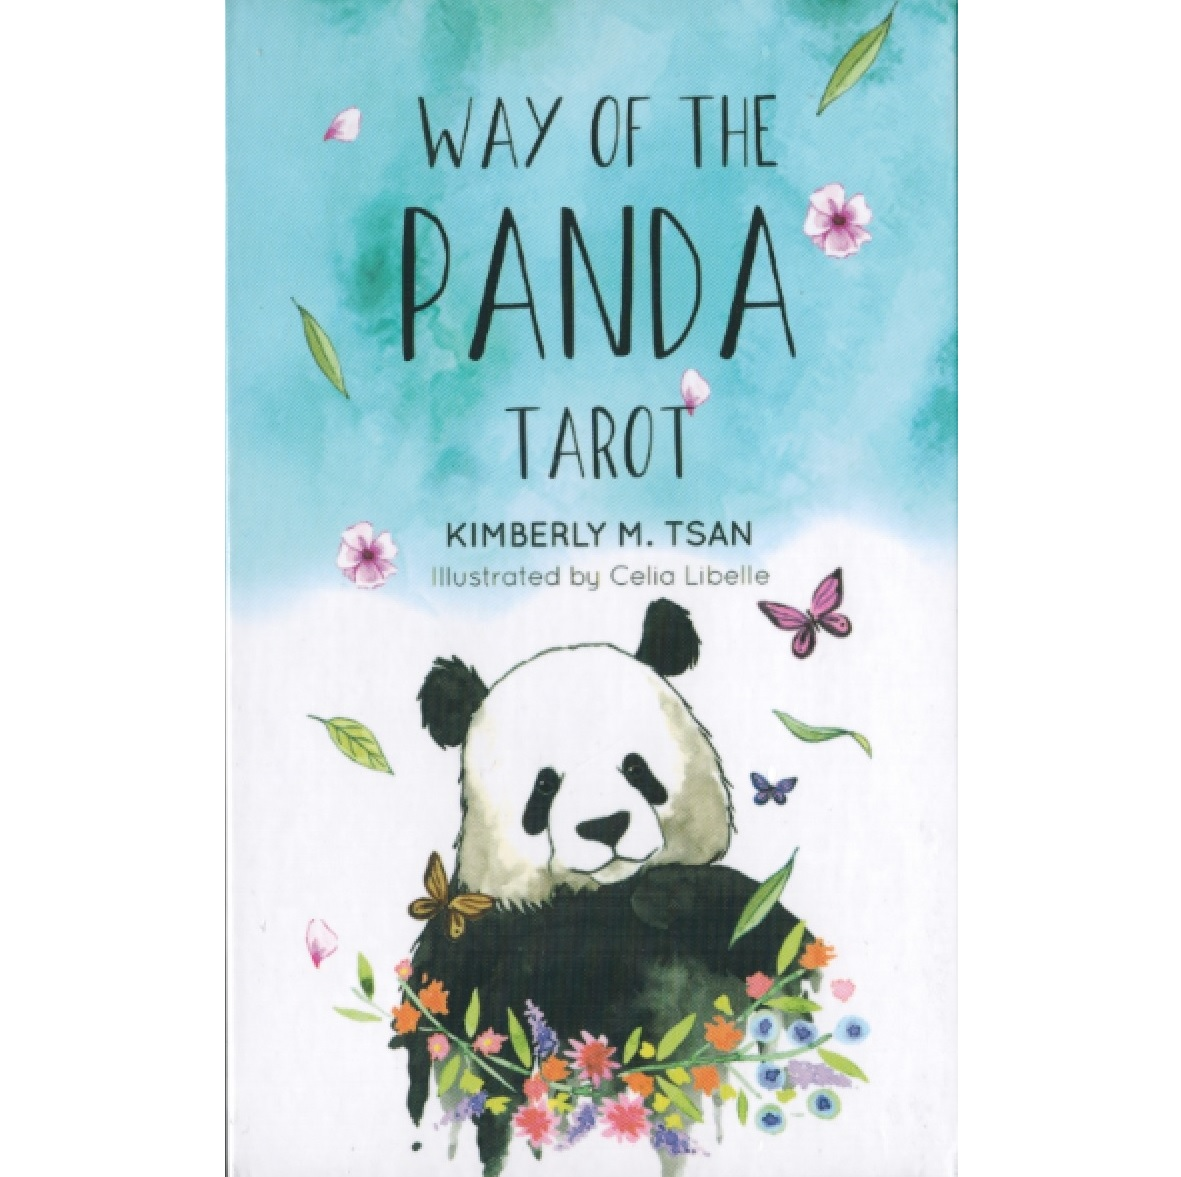 Way of the Panda Tarot 5